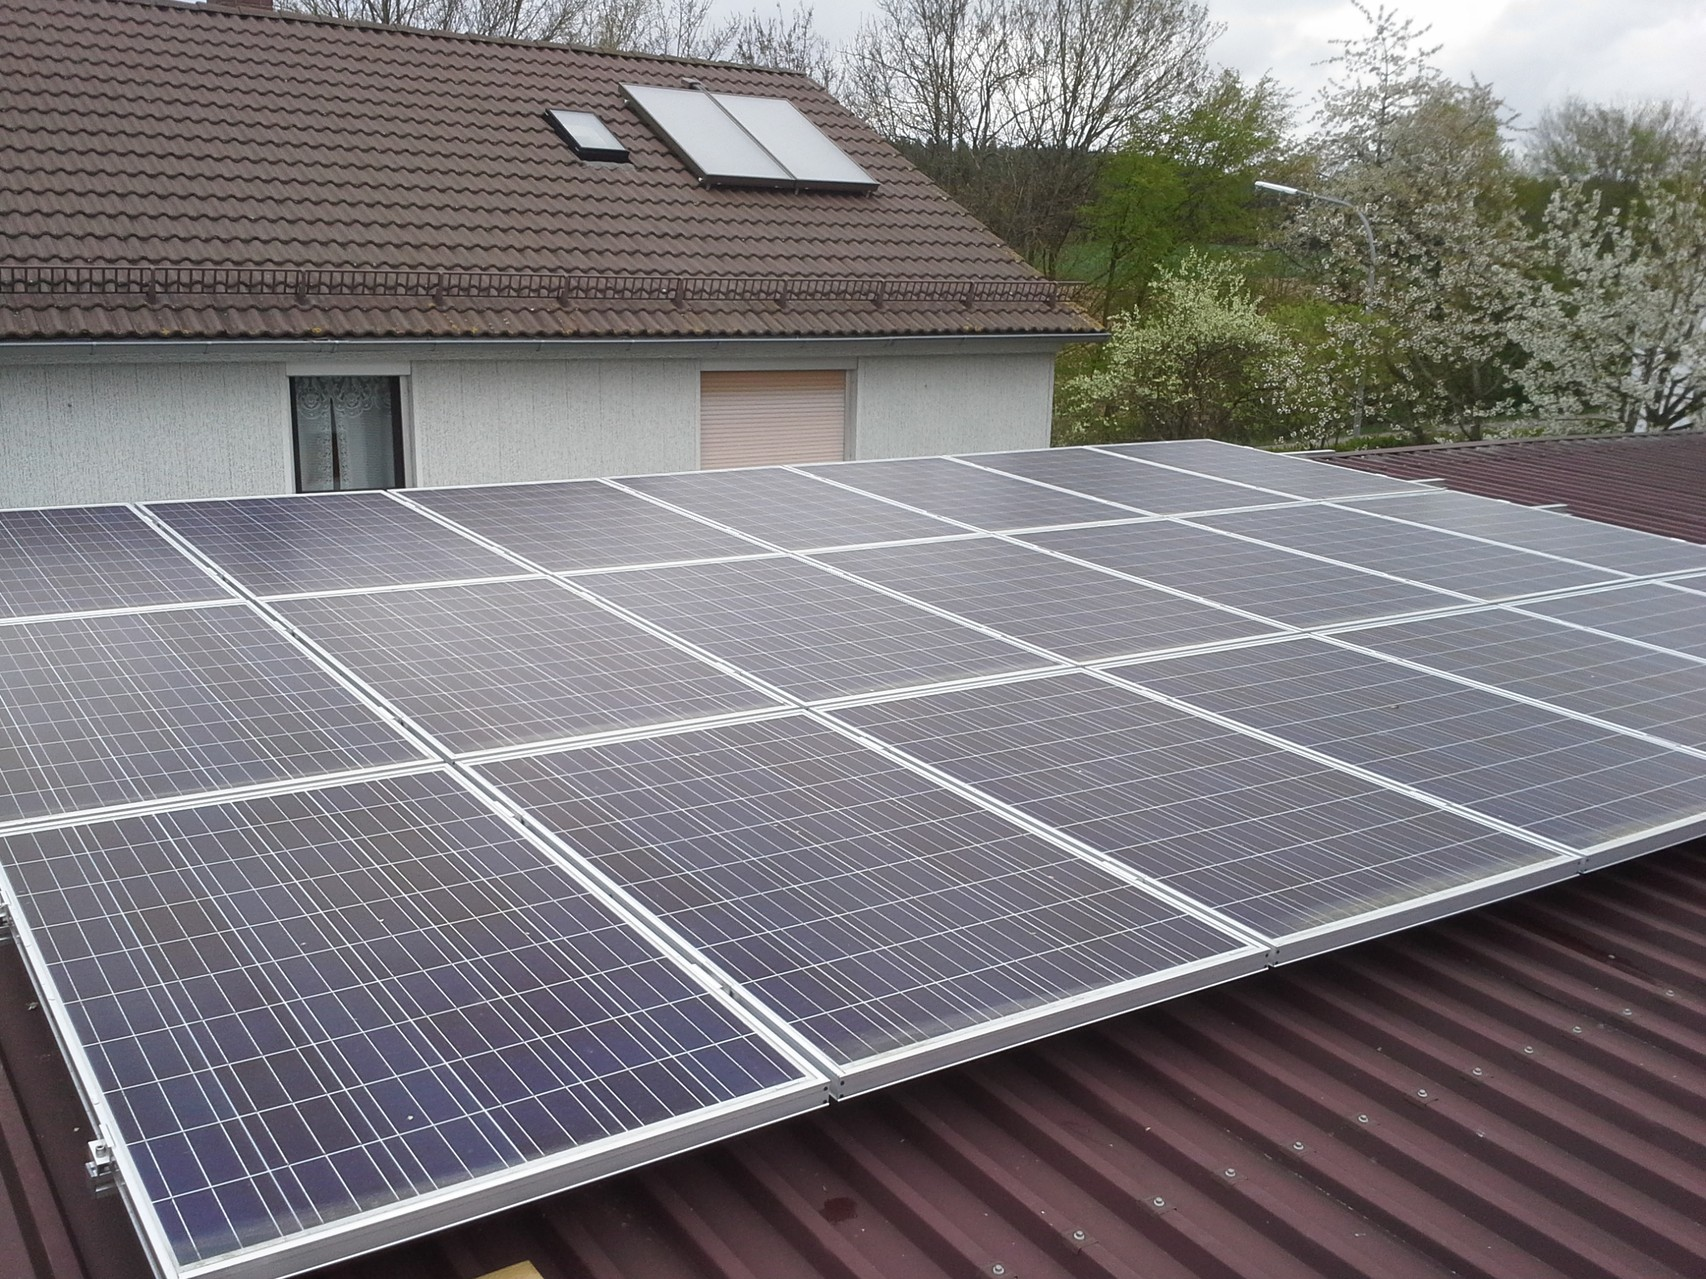 9,5 kWp in 93138 Lappersdorf/Schwaighausen SHARP Solar